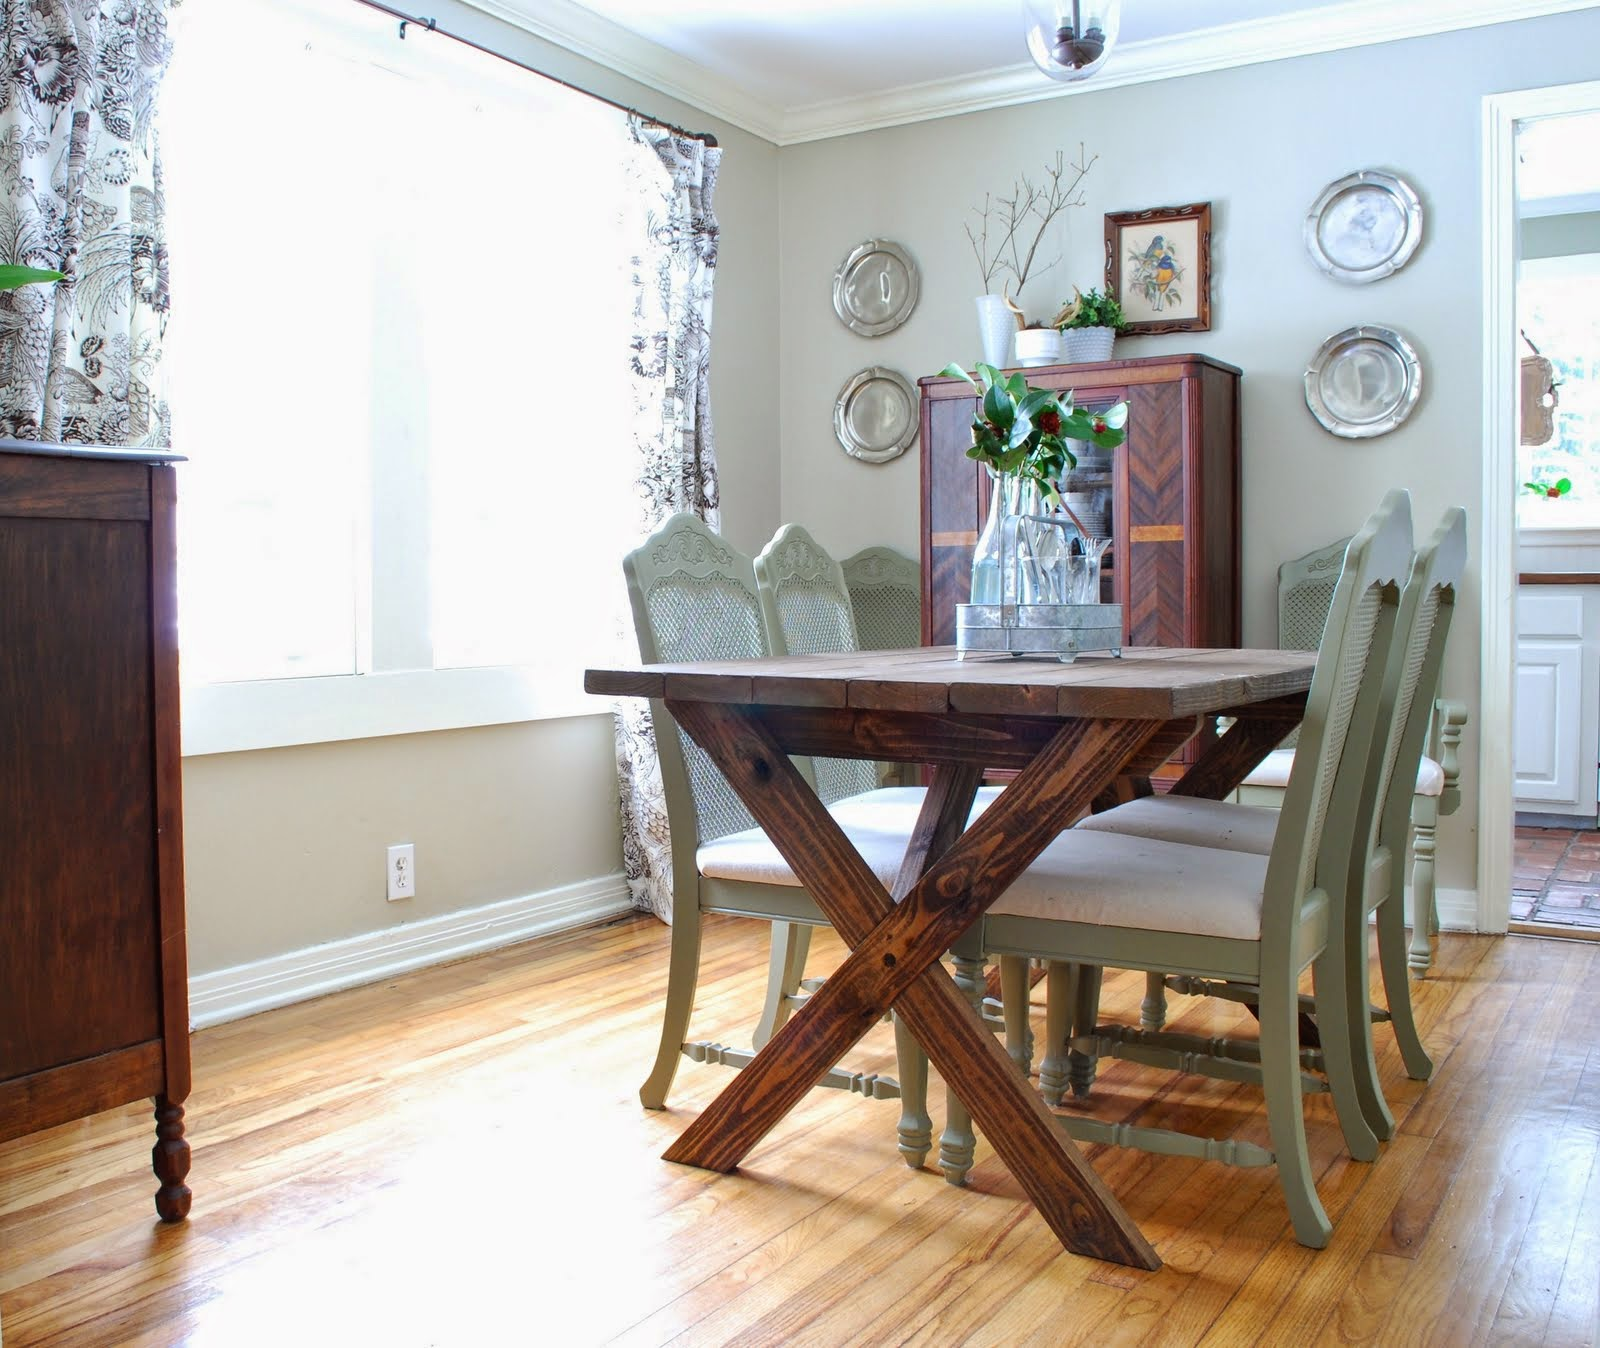 dining table with wooden legs wooden chairs antique furniture